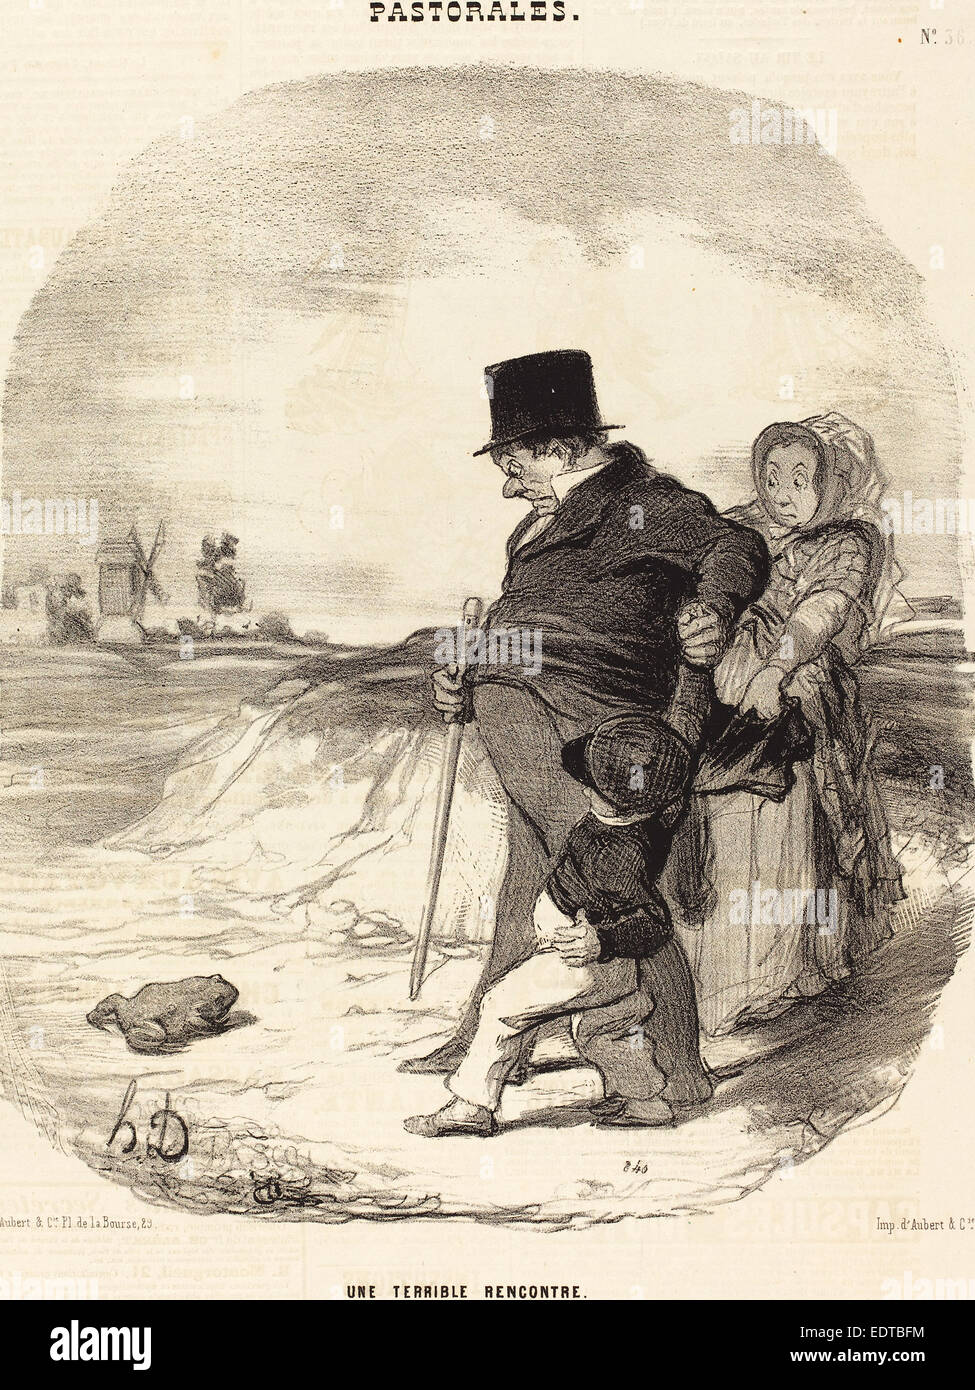 Honoré Daumier (French, 1808 - 1879), Une Terrible rencontre, 1845, lithograph on newsprint - Stock Image